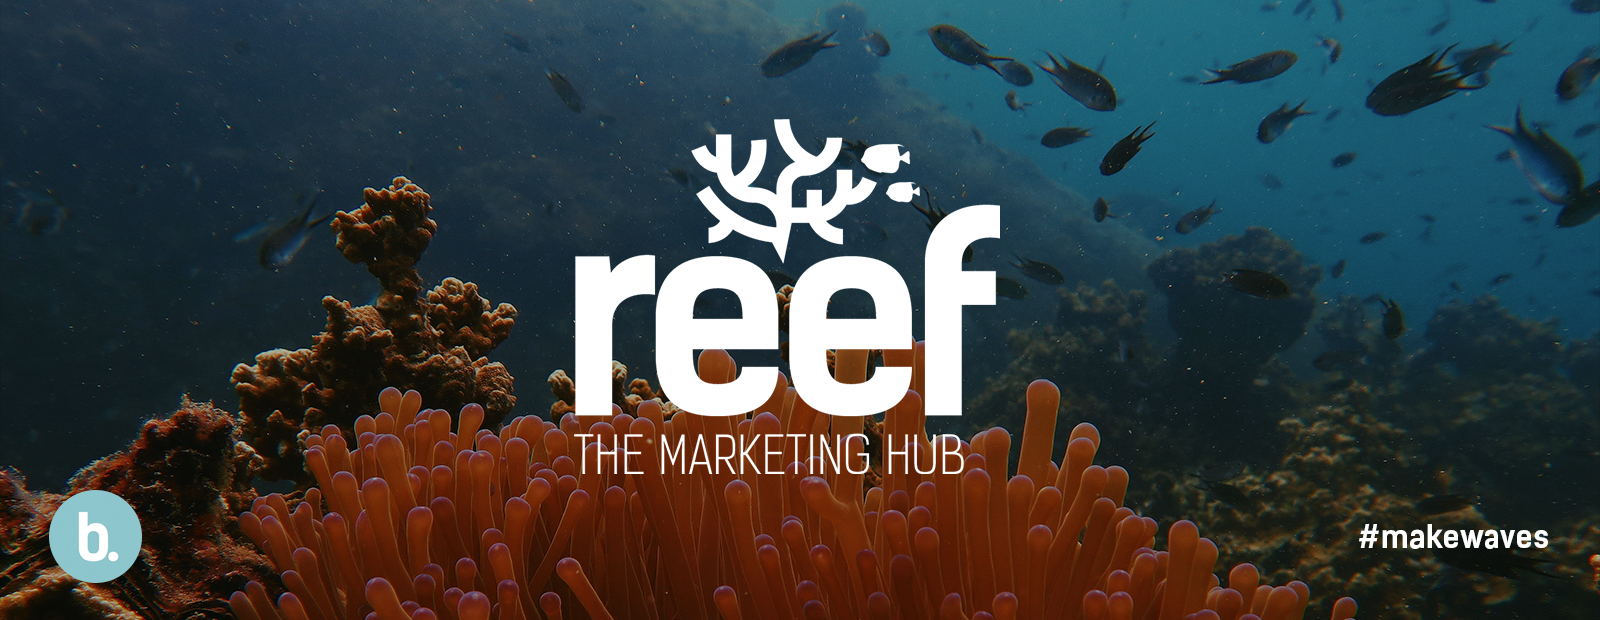 Reef Web to print brand portal software